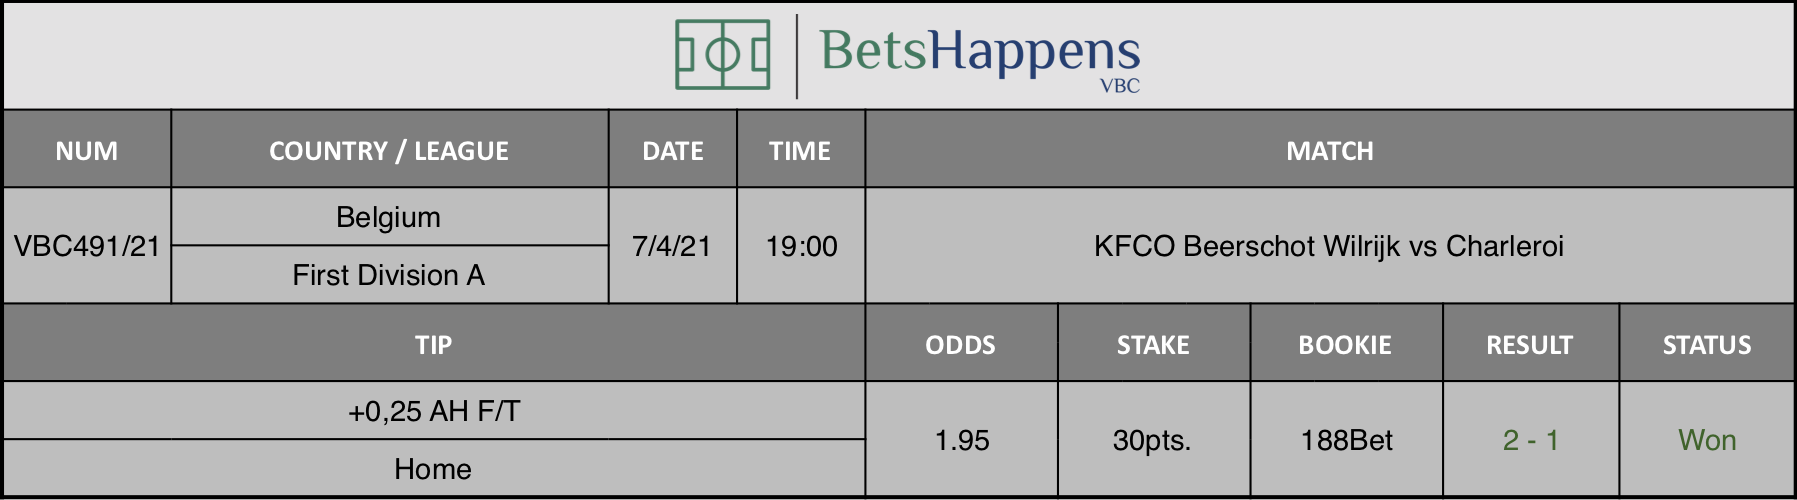 Results of our tip for the KFCO Beerschot Wilrijk vs Charleroi match where +0,25 AH F/T  Home is recommended.